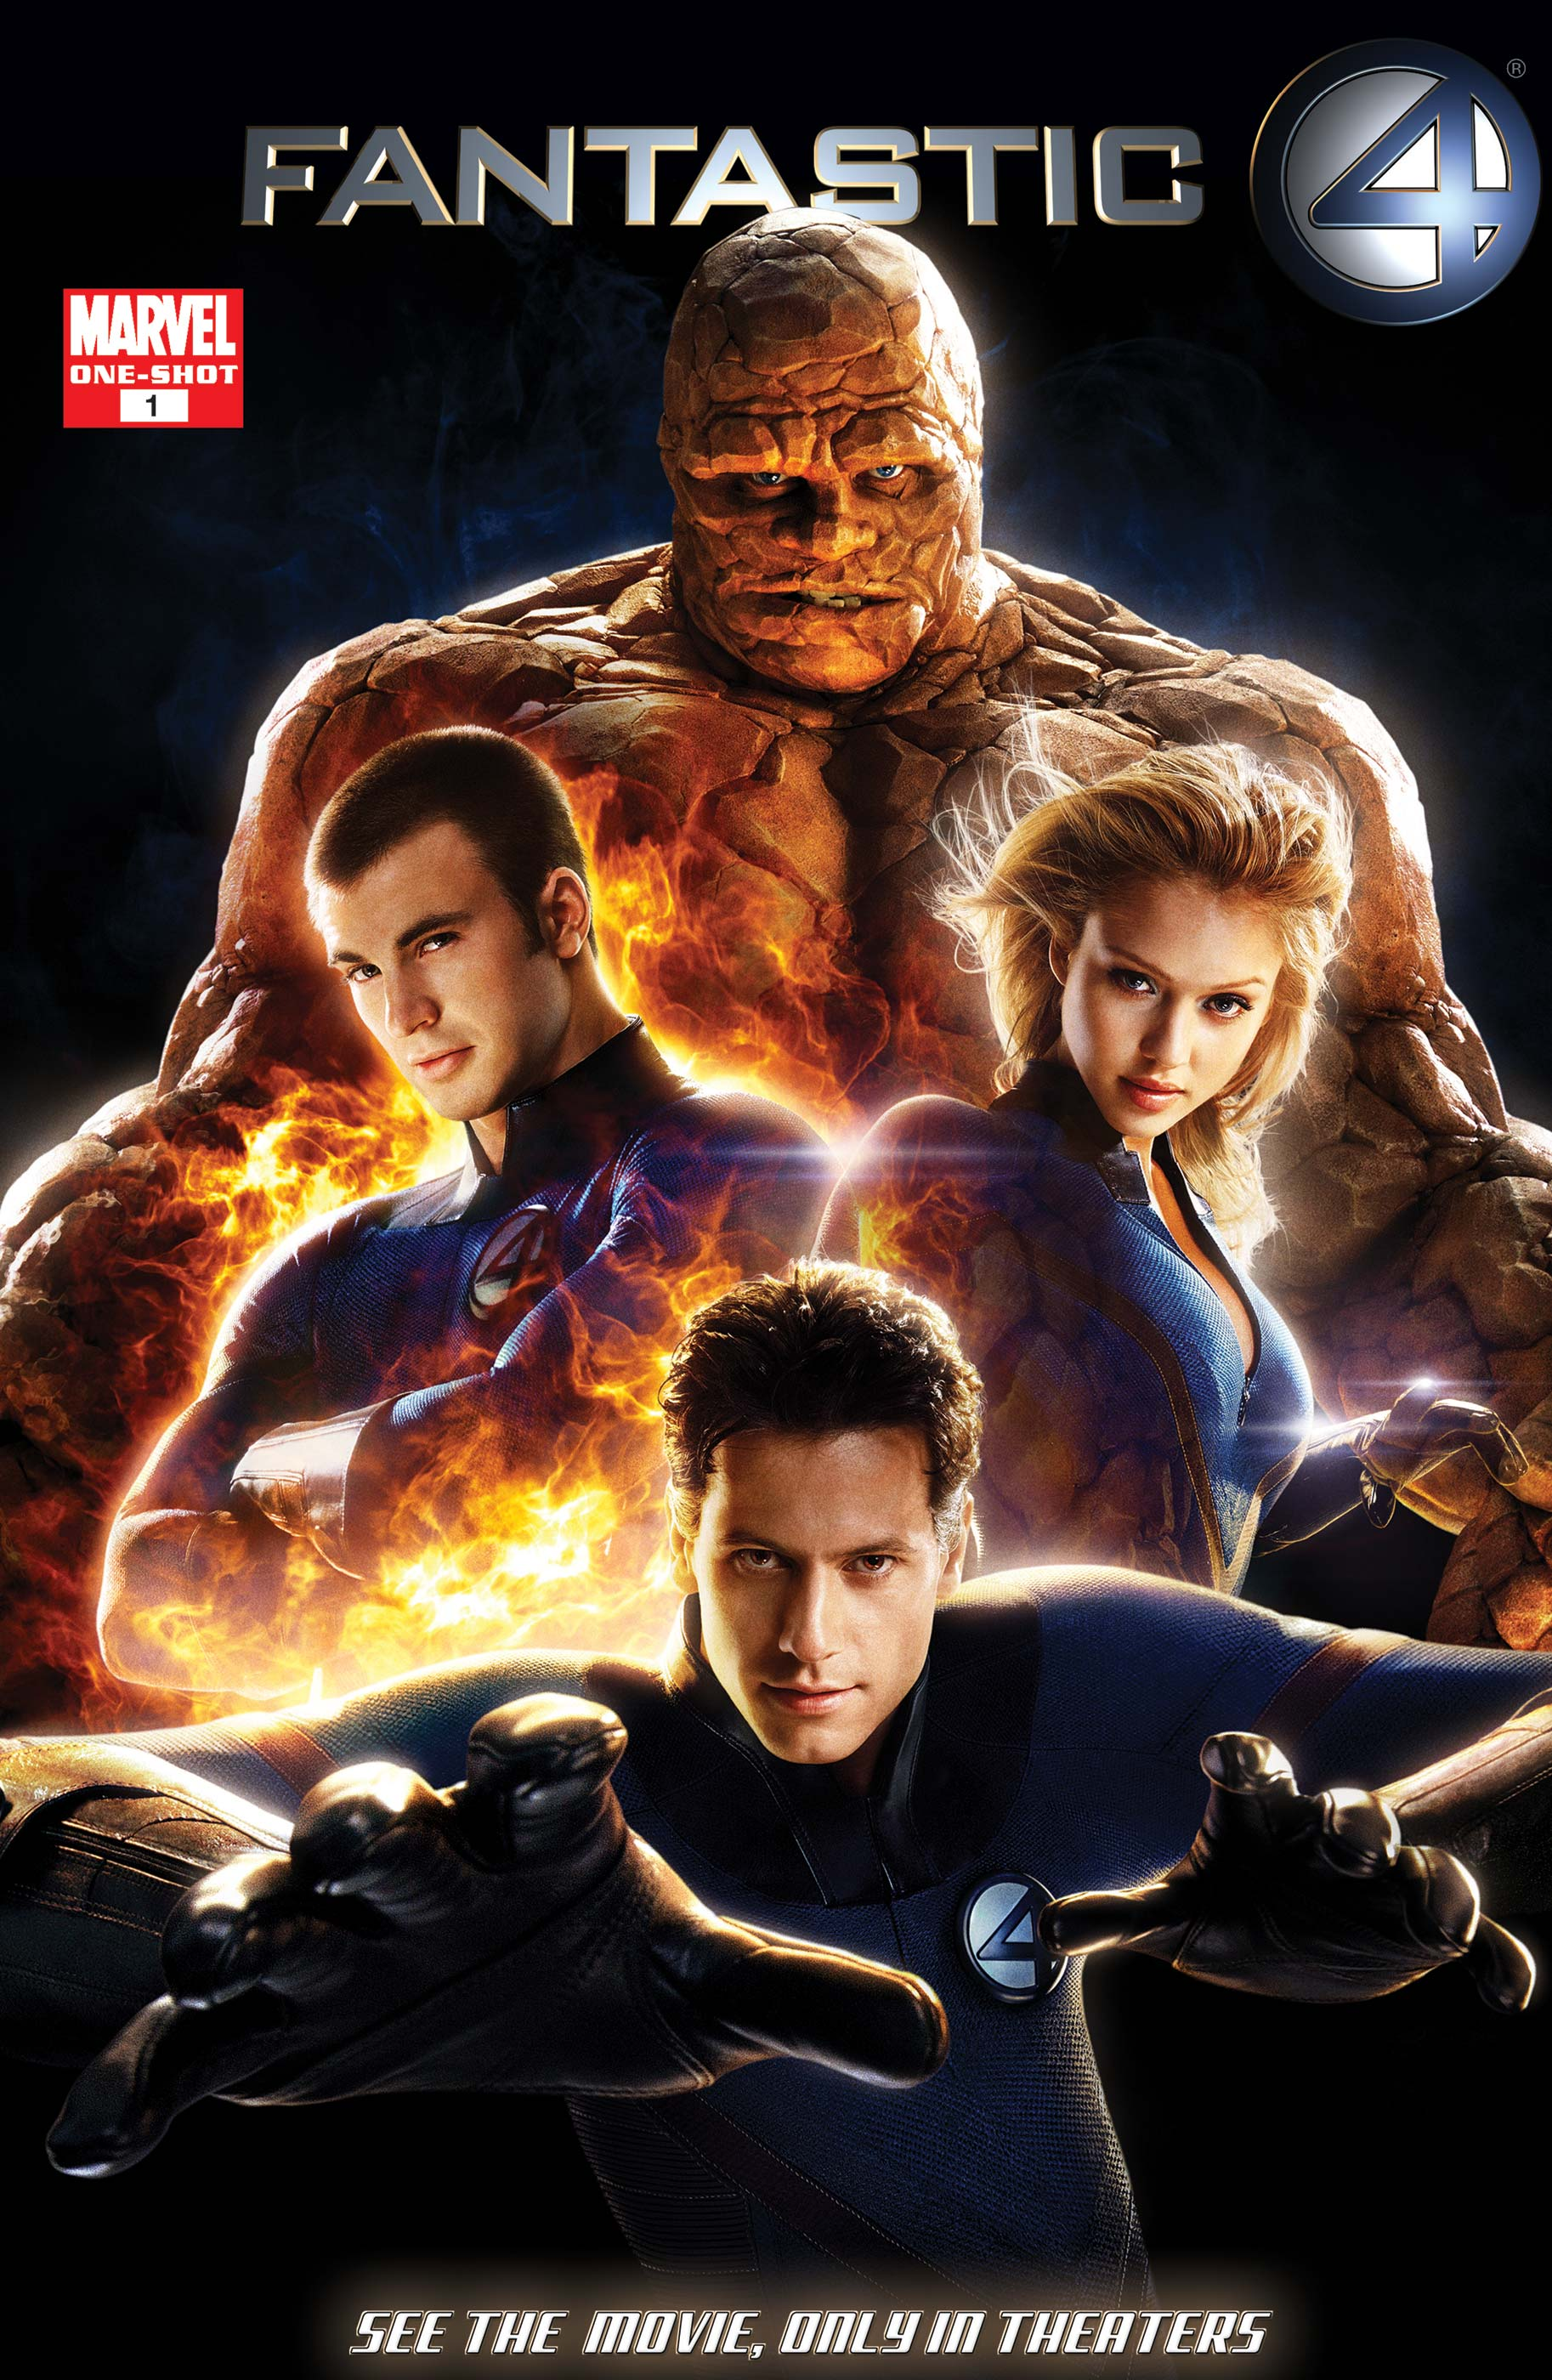 Fantastic Four: The Movie (2005) #1